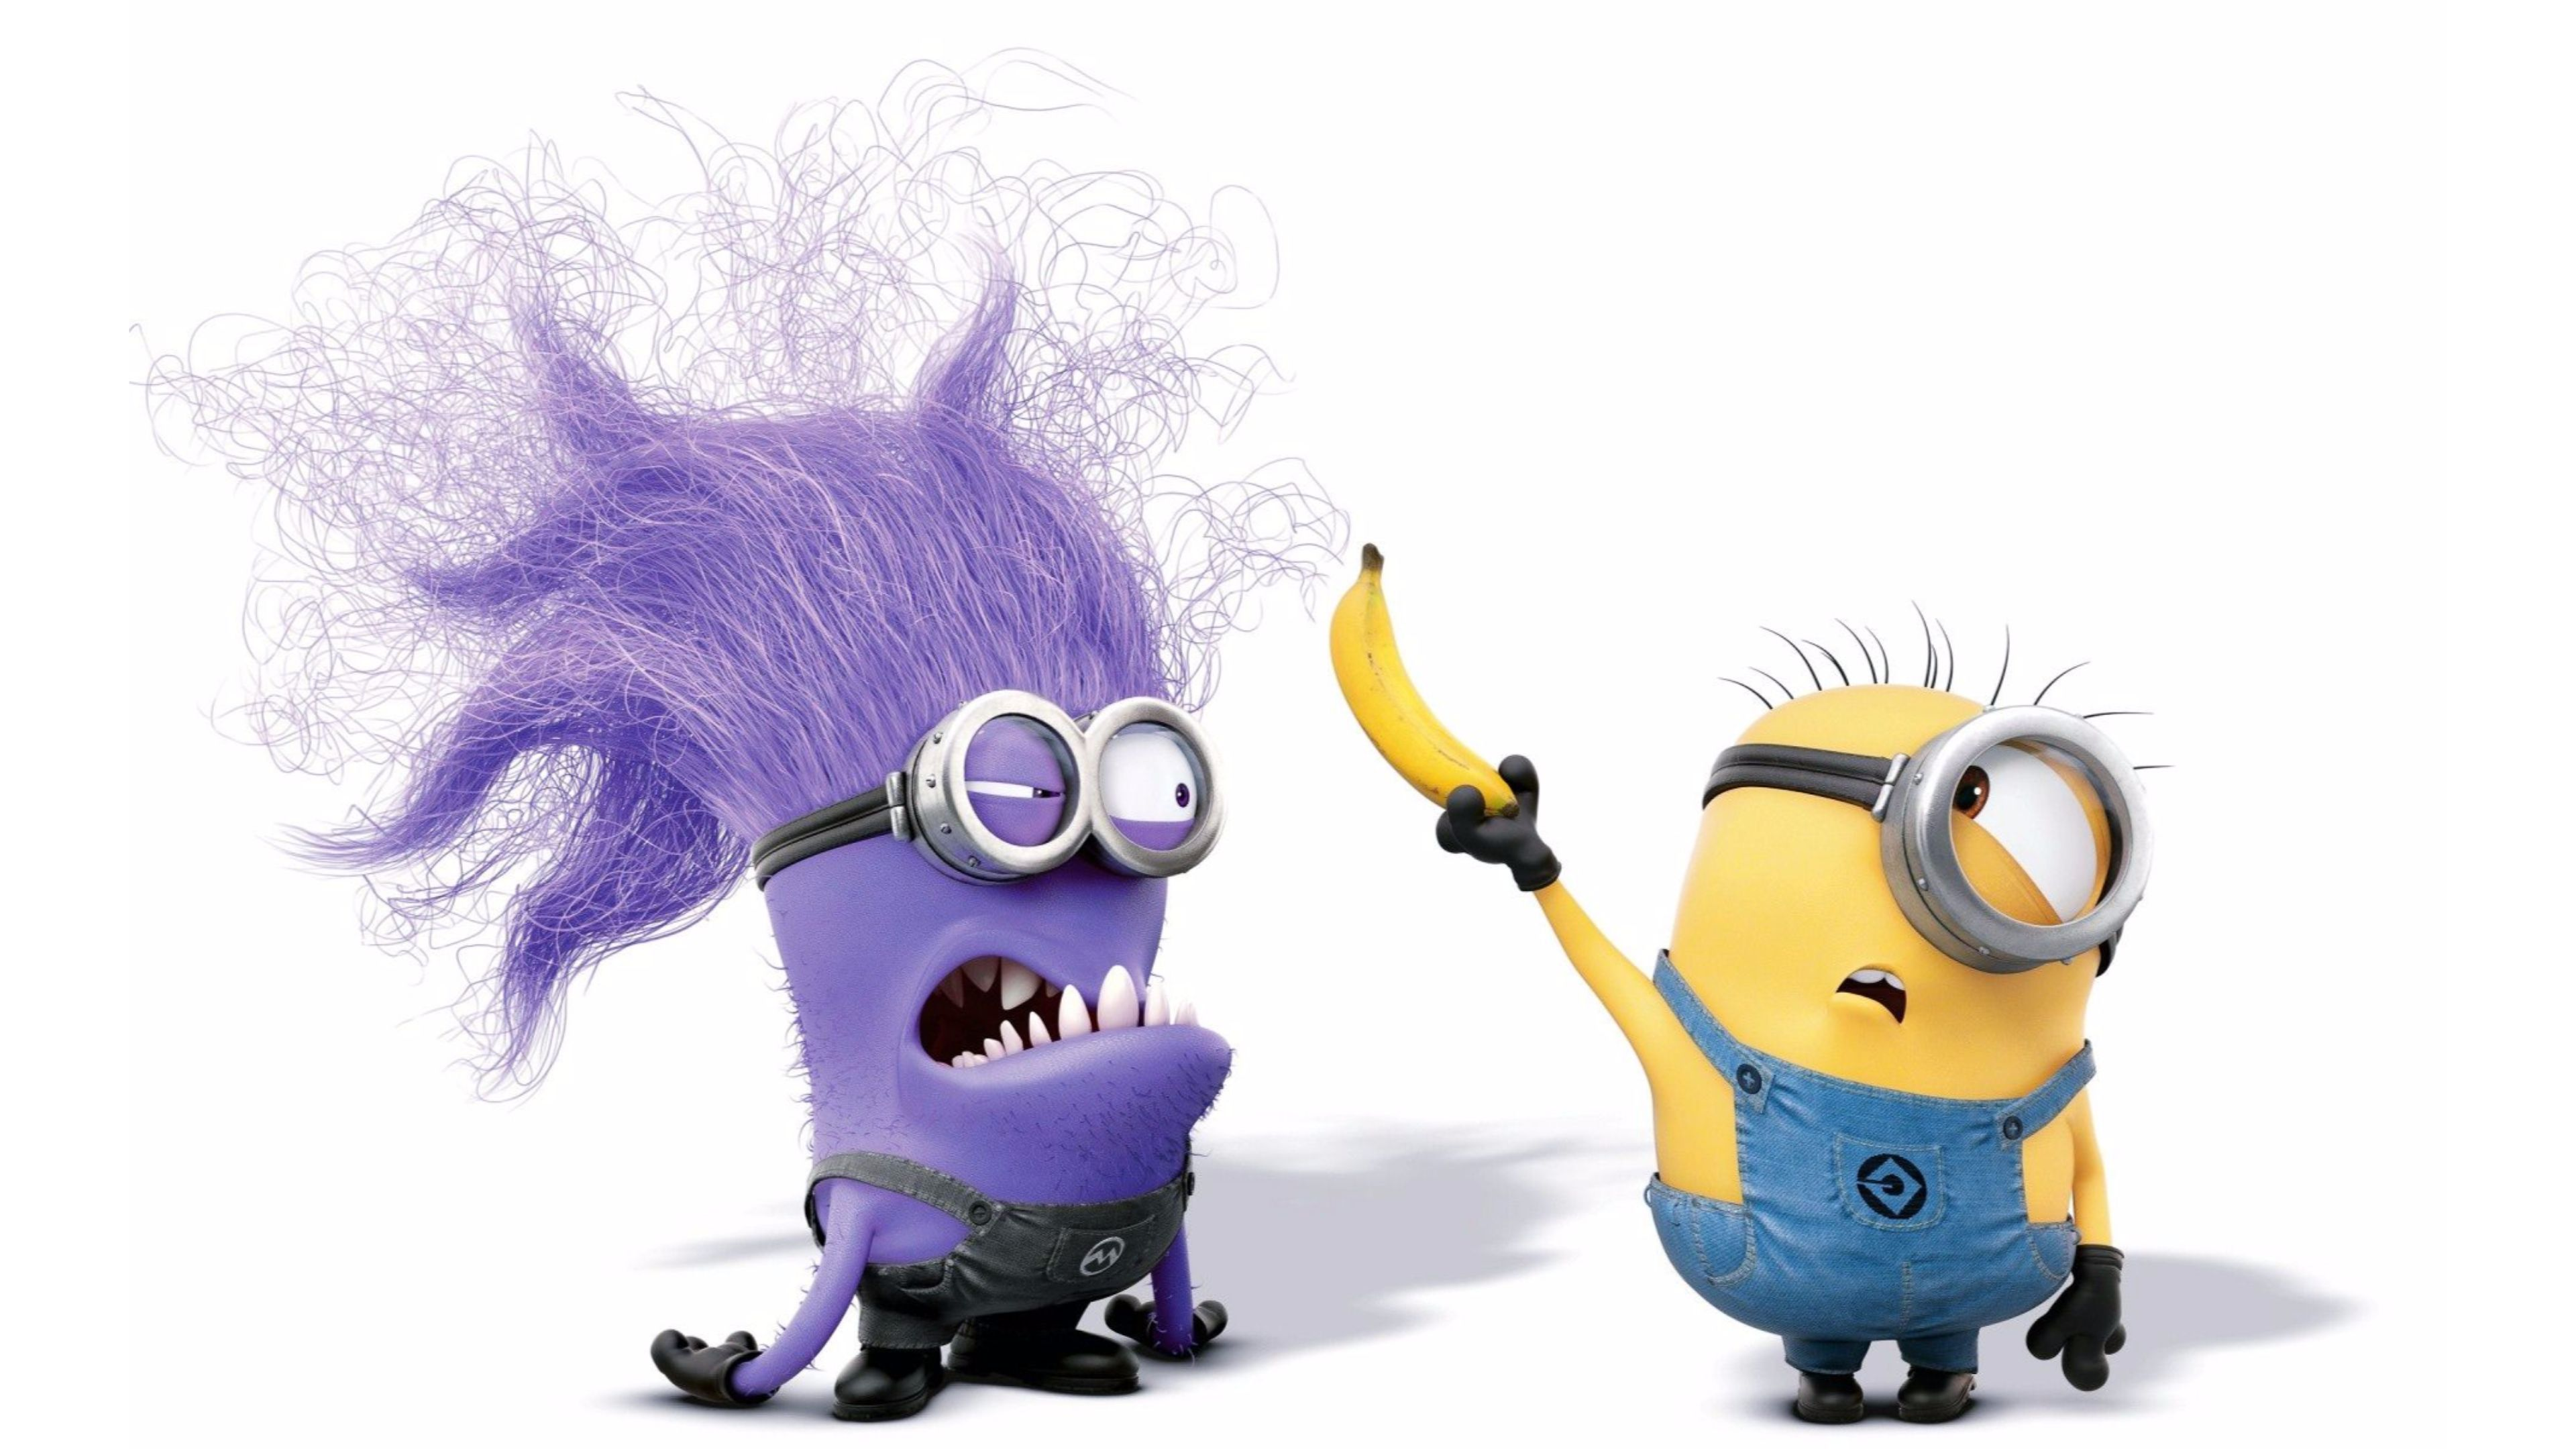 Purple Minions wallpaper